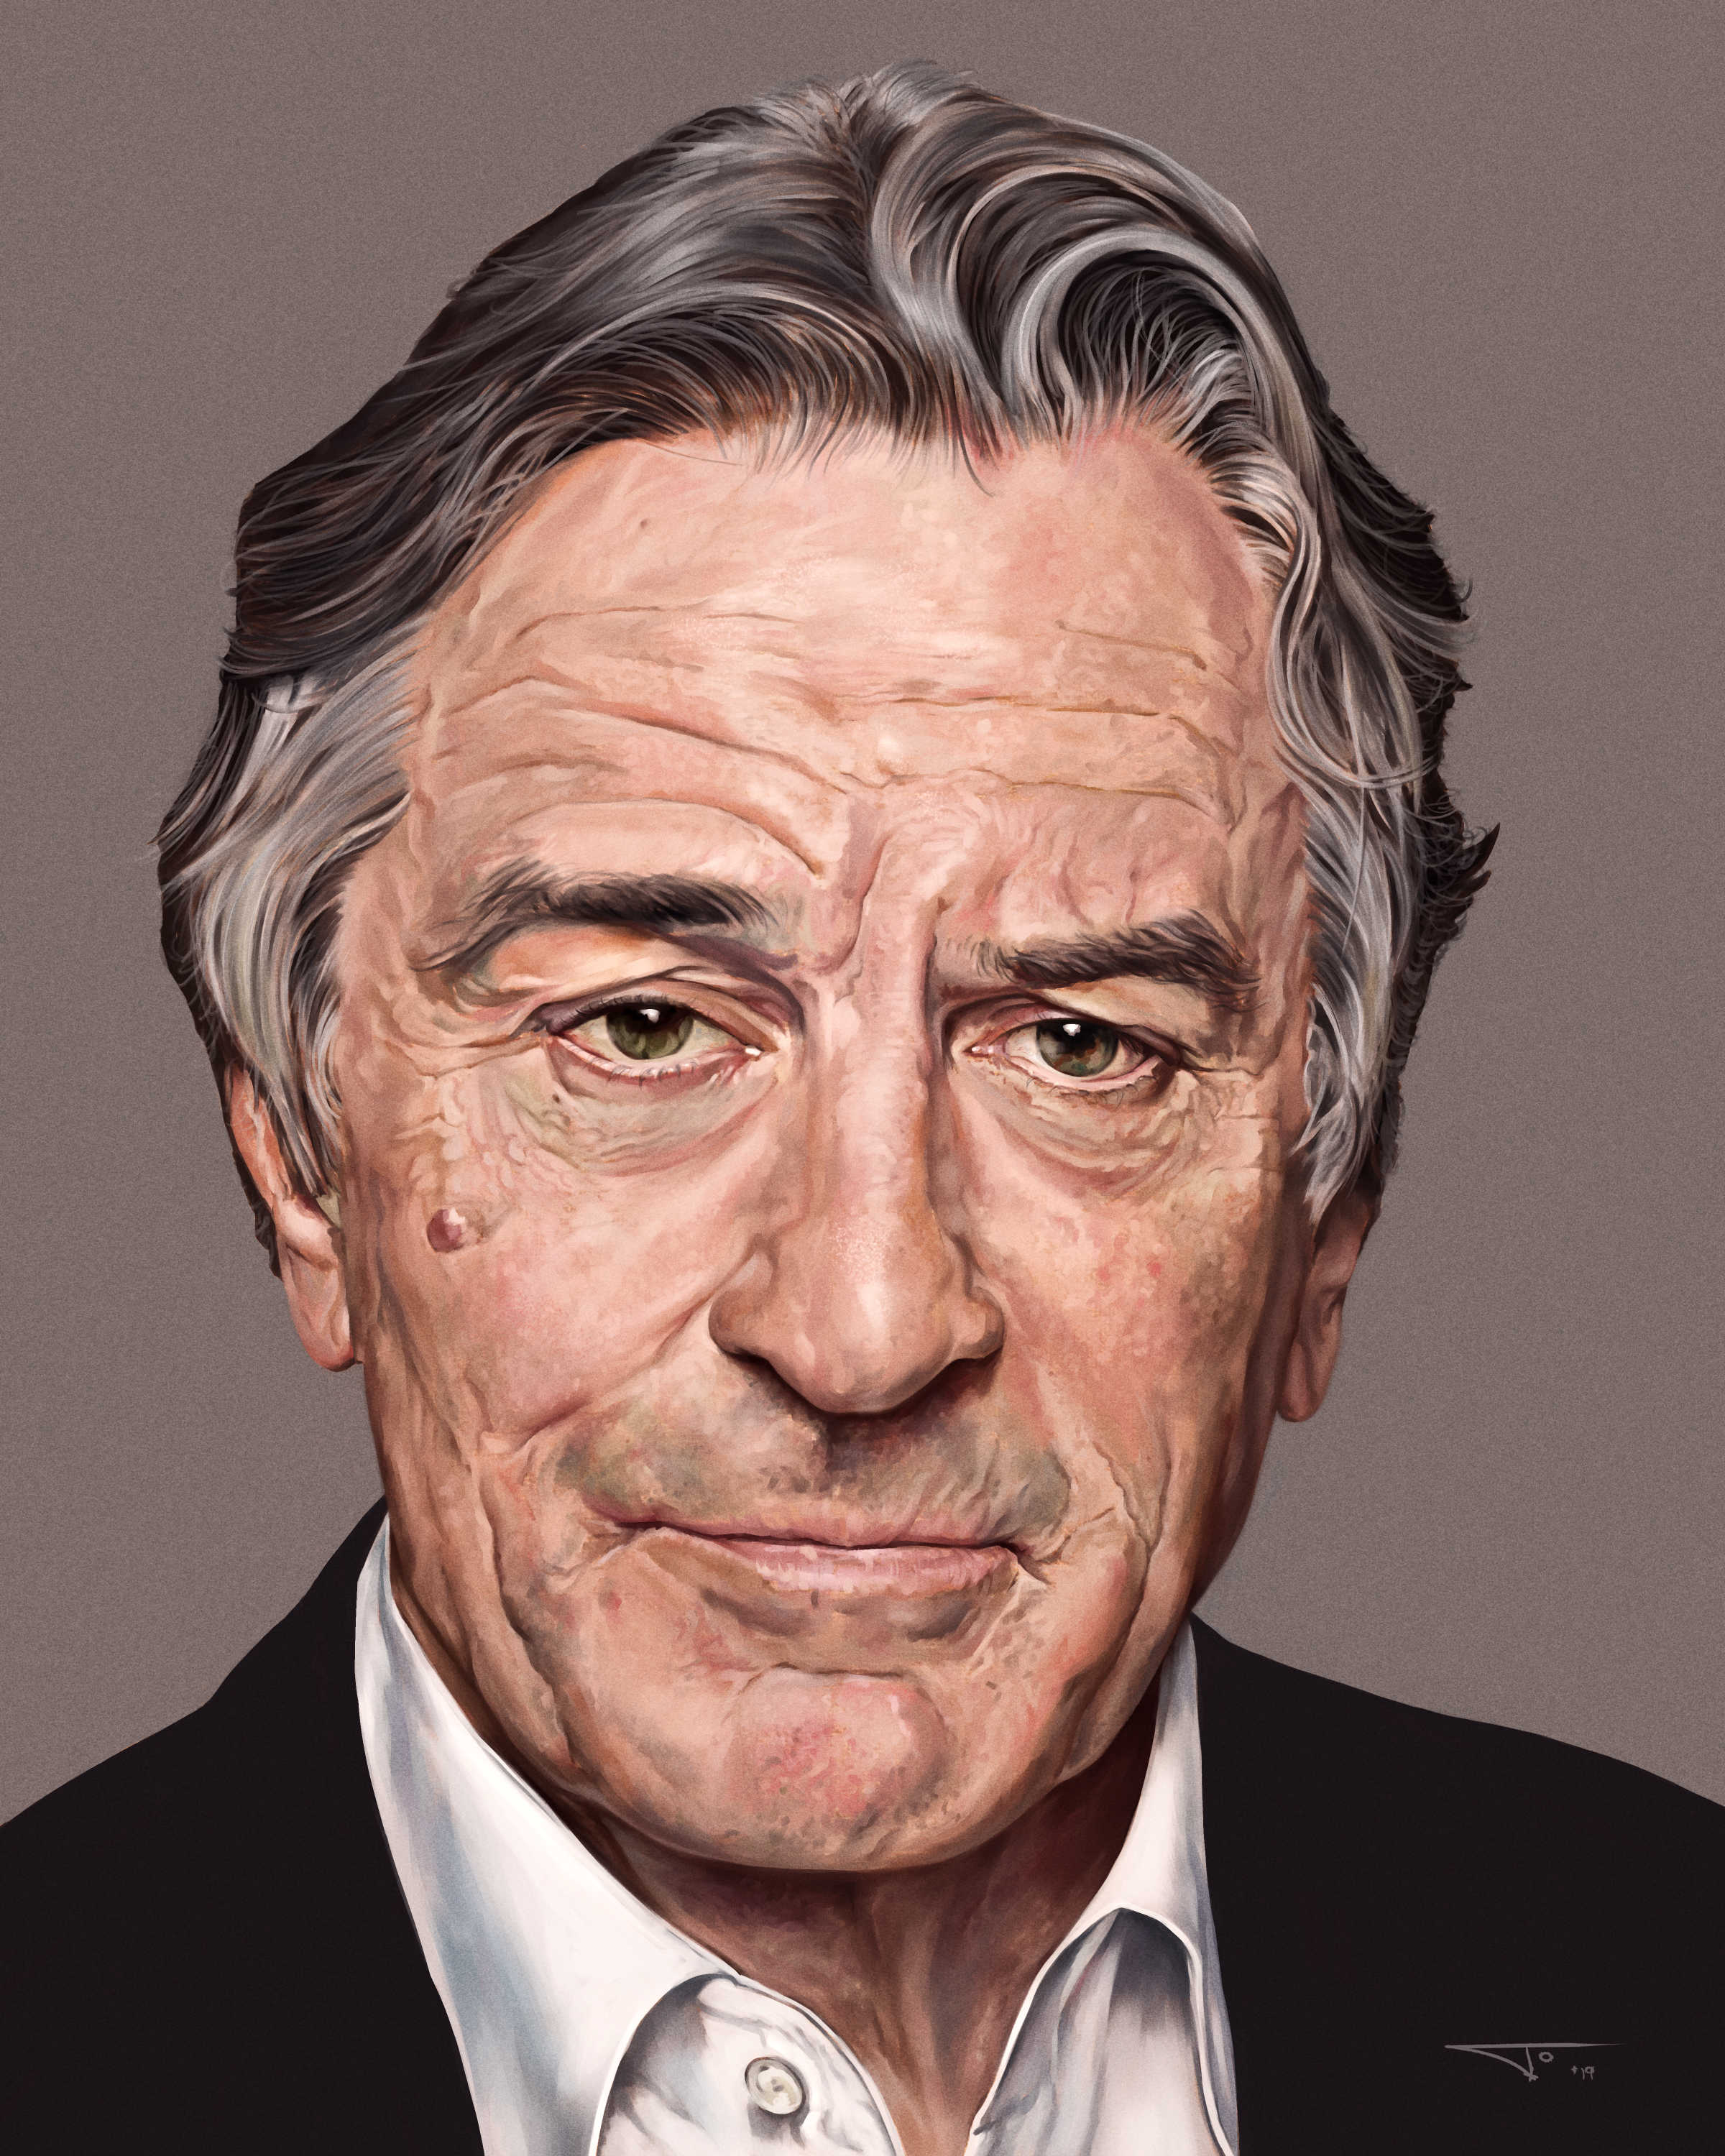 Robert De Niro Low-Res.jpg